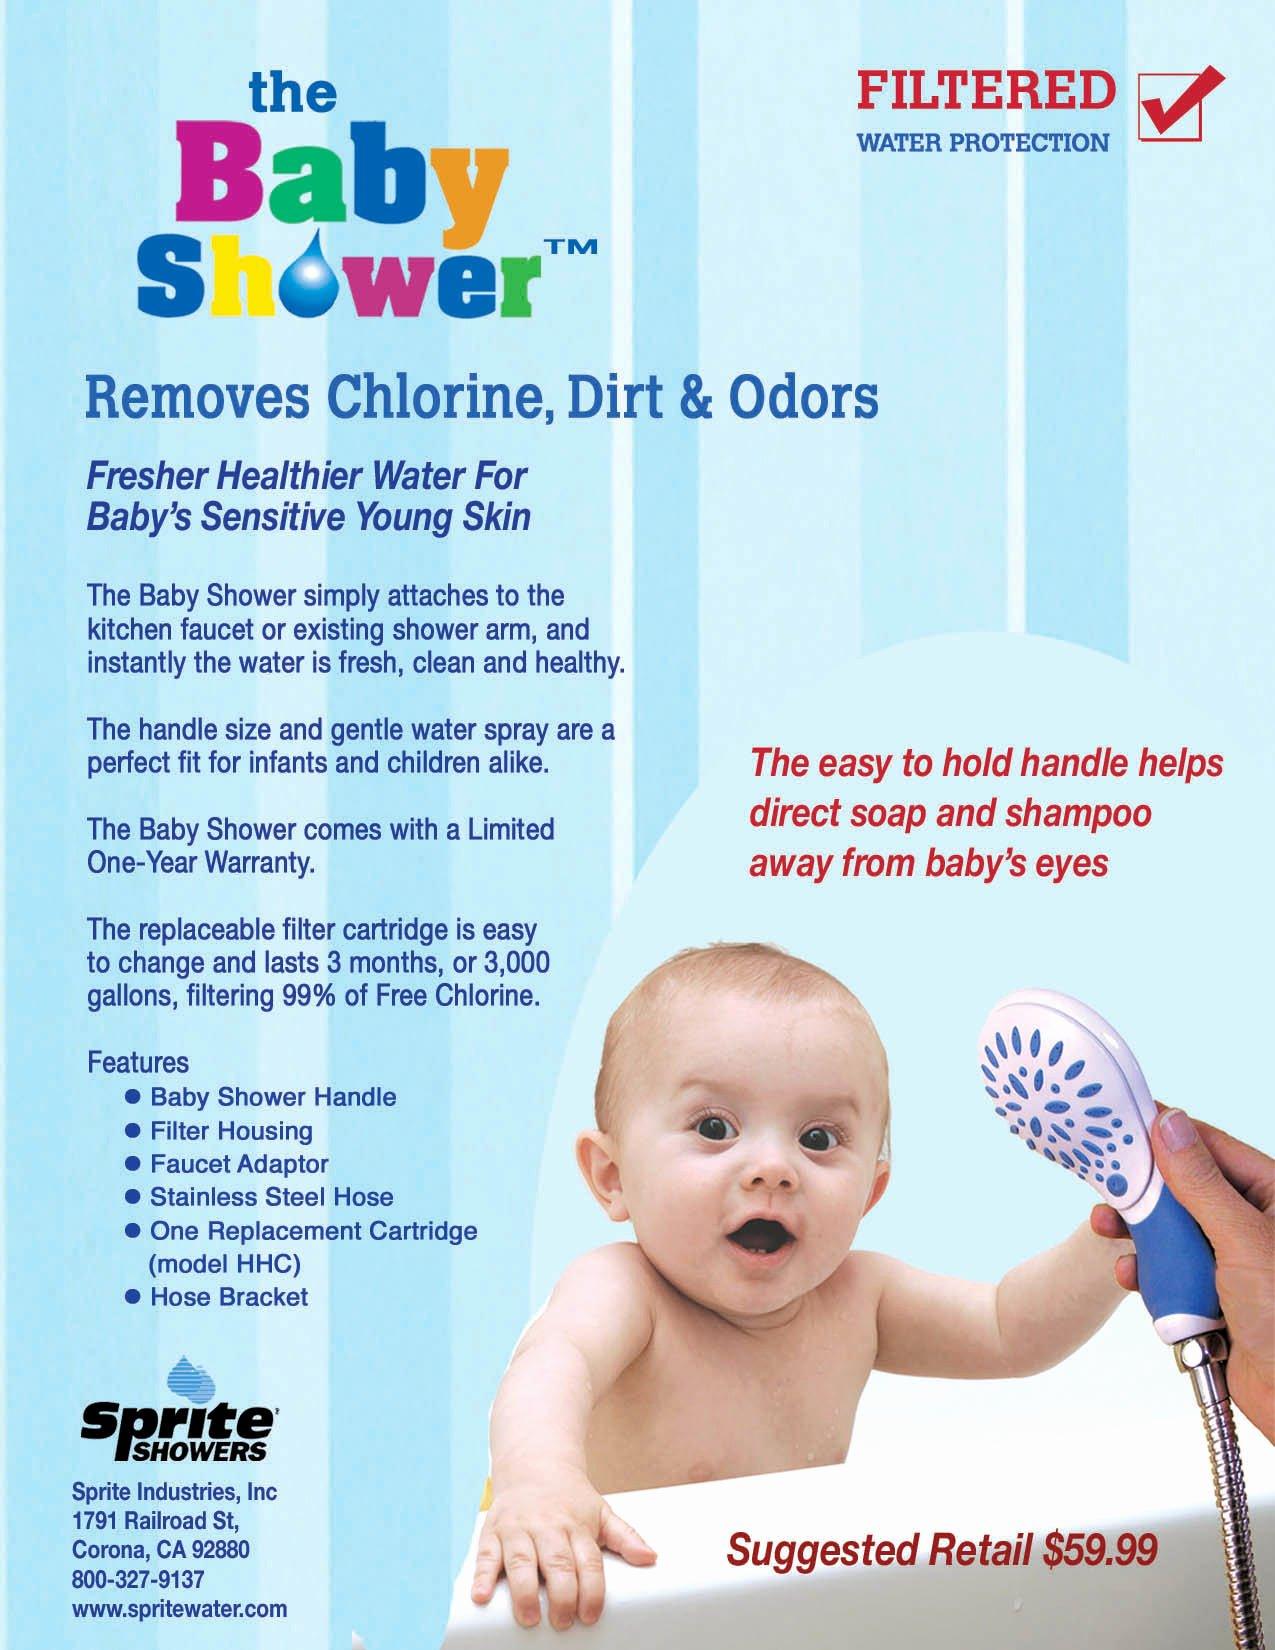 Product Sell Sheet Template Unique Sprite Baby Shower Filter for softer Cleaner Babies